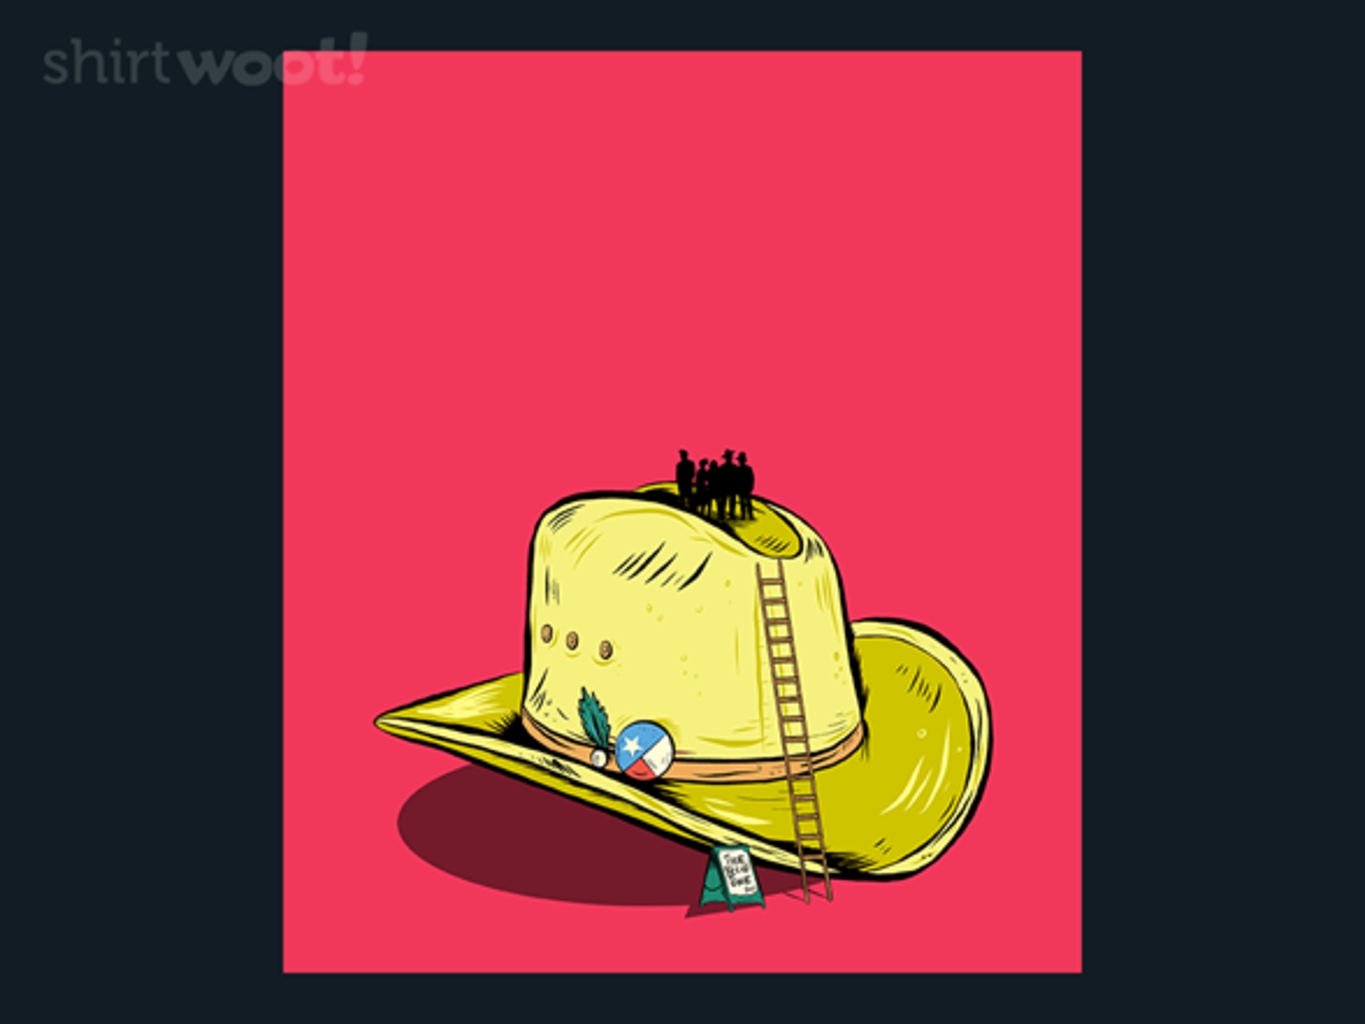 Woot!: The Big Hat